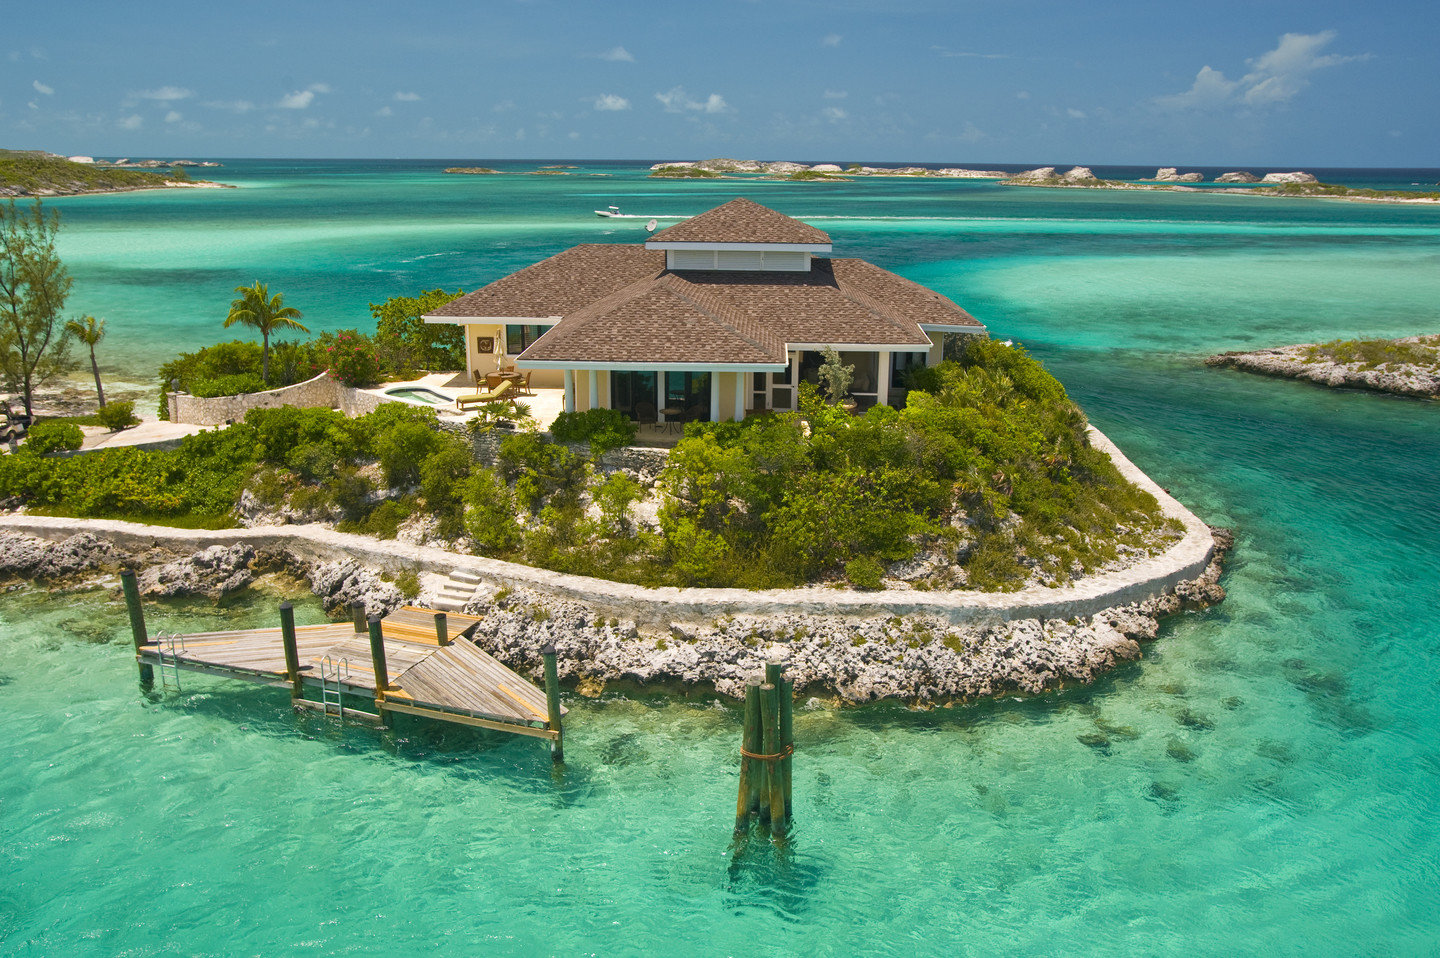 Hotels water outdoor sky Sea landform geographical feature swimming pool house caribbean vacation Nature shore Beach Resort Ocean estate Coast bay Lagoon archipelago Island islet resort town cove tropics Pool cape cay atoll reef swimming several